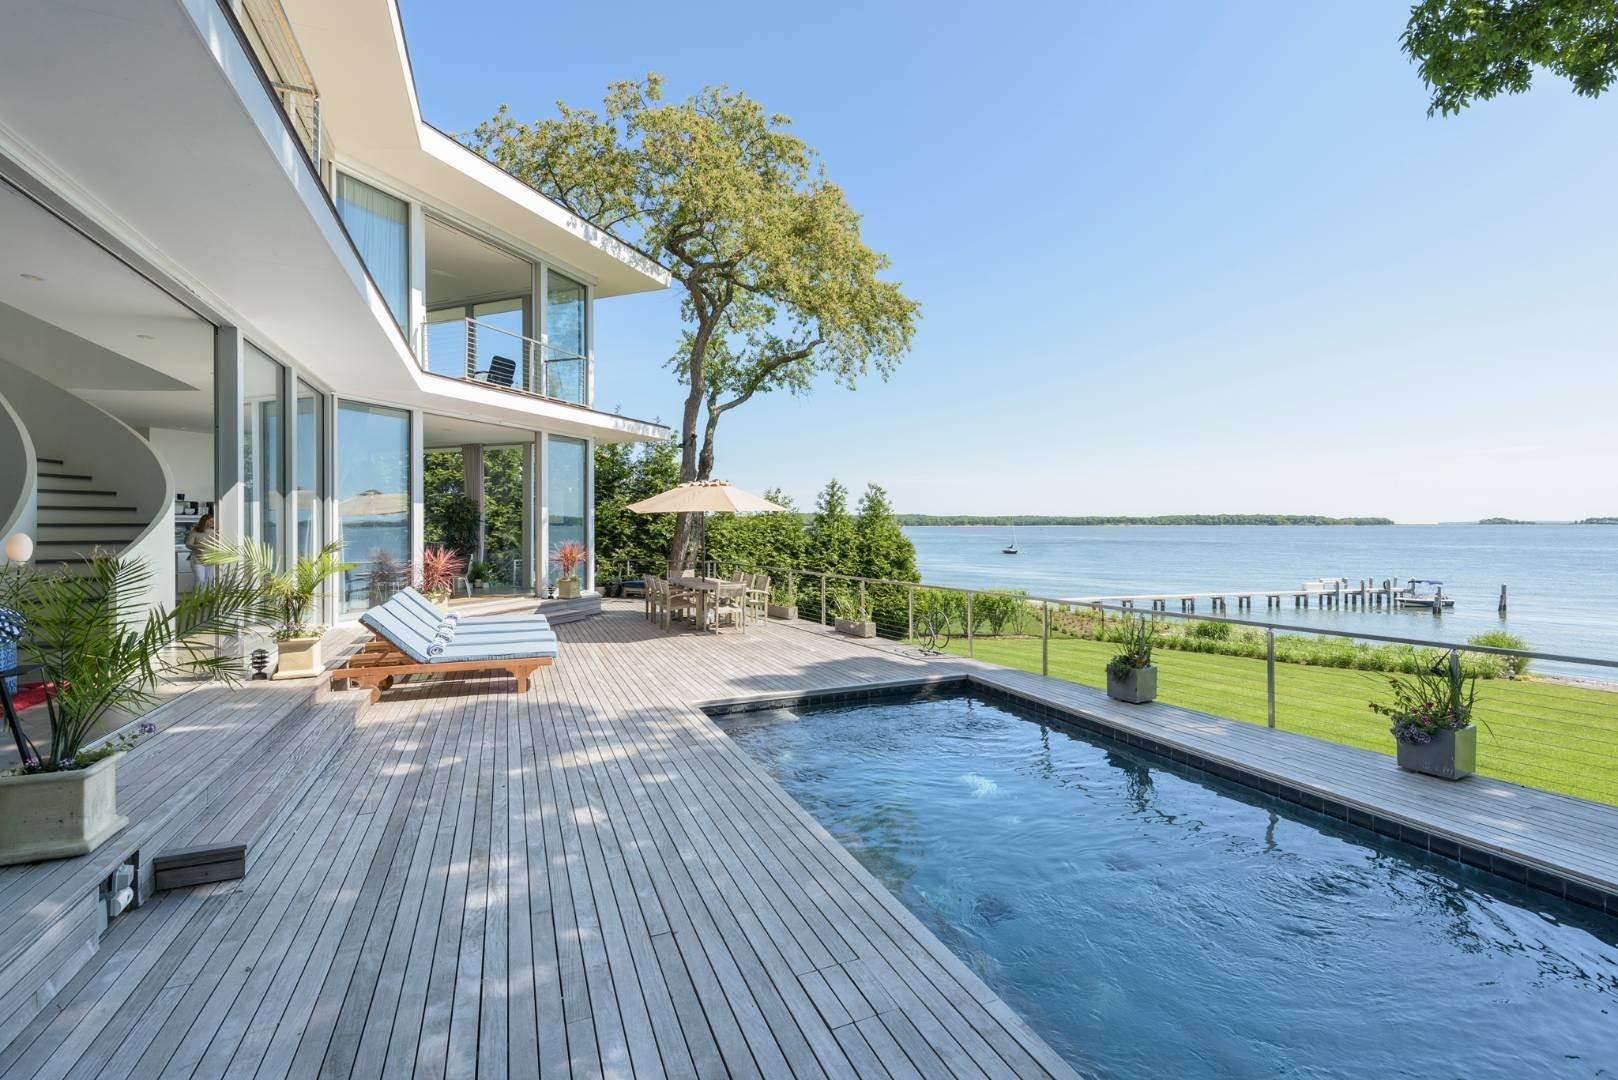 Single Family Home for Sale at Modern Waterfront 15 Mashomuck Dr, Sag Harbor, NY 11963